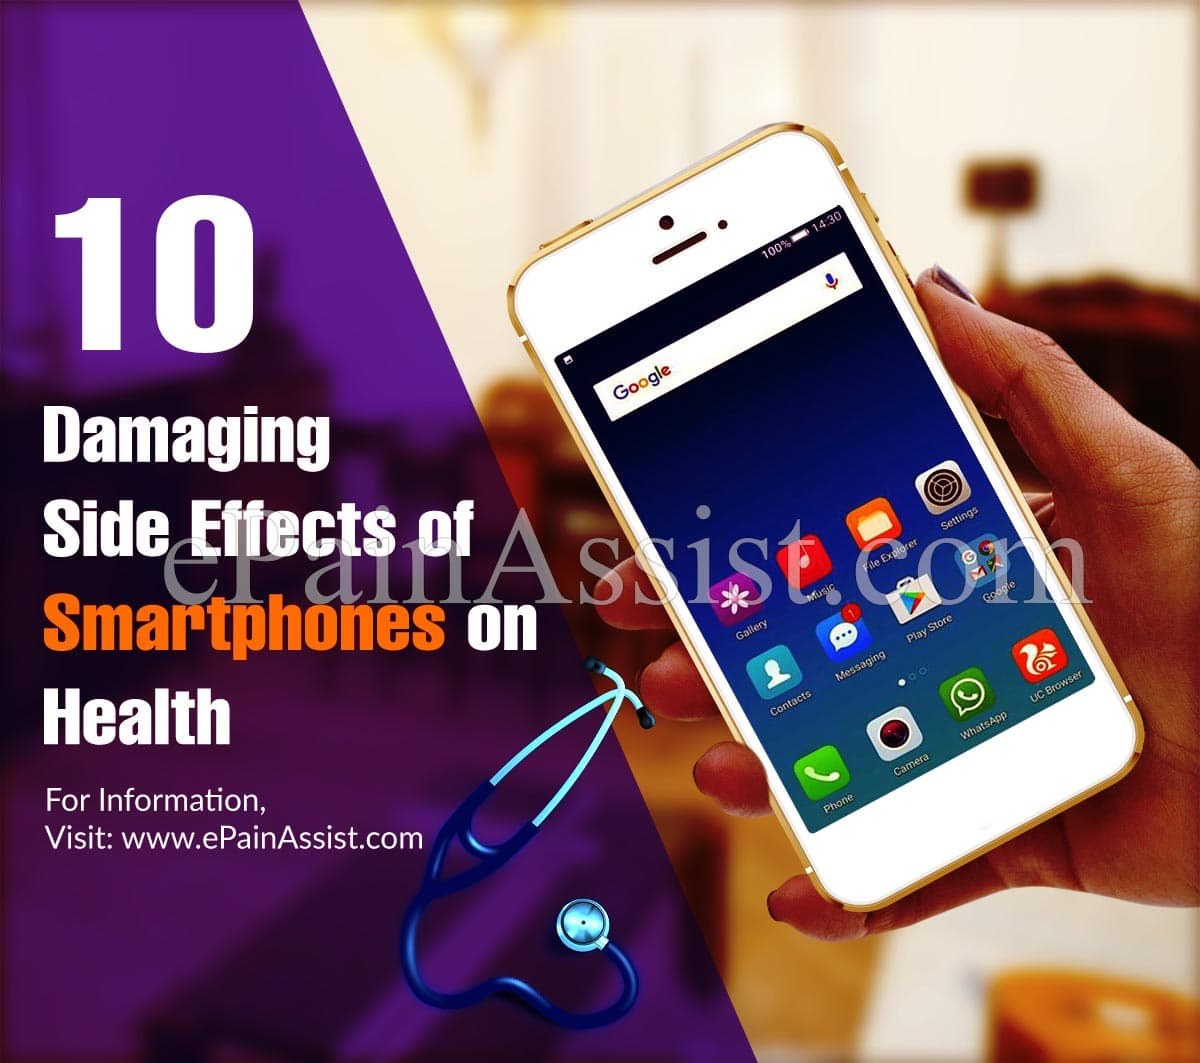 10 Damaging Side Effects of Smartphones on Health